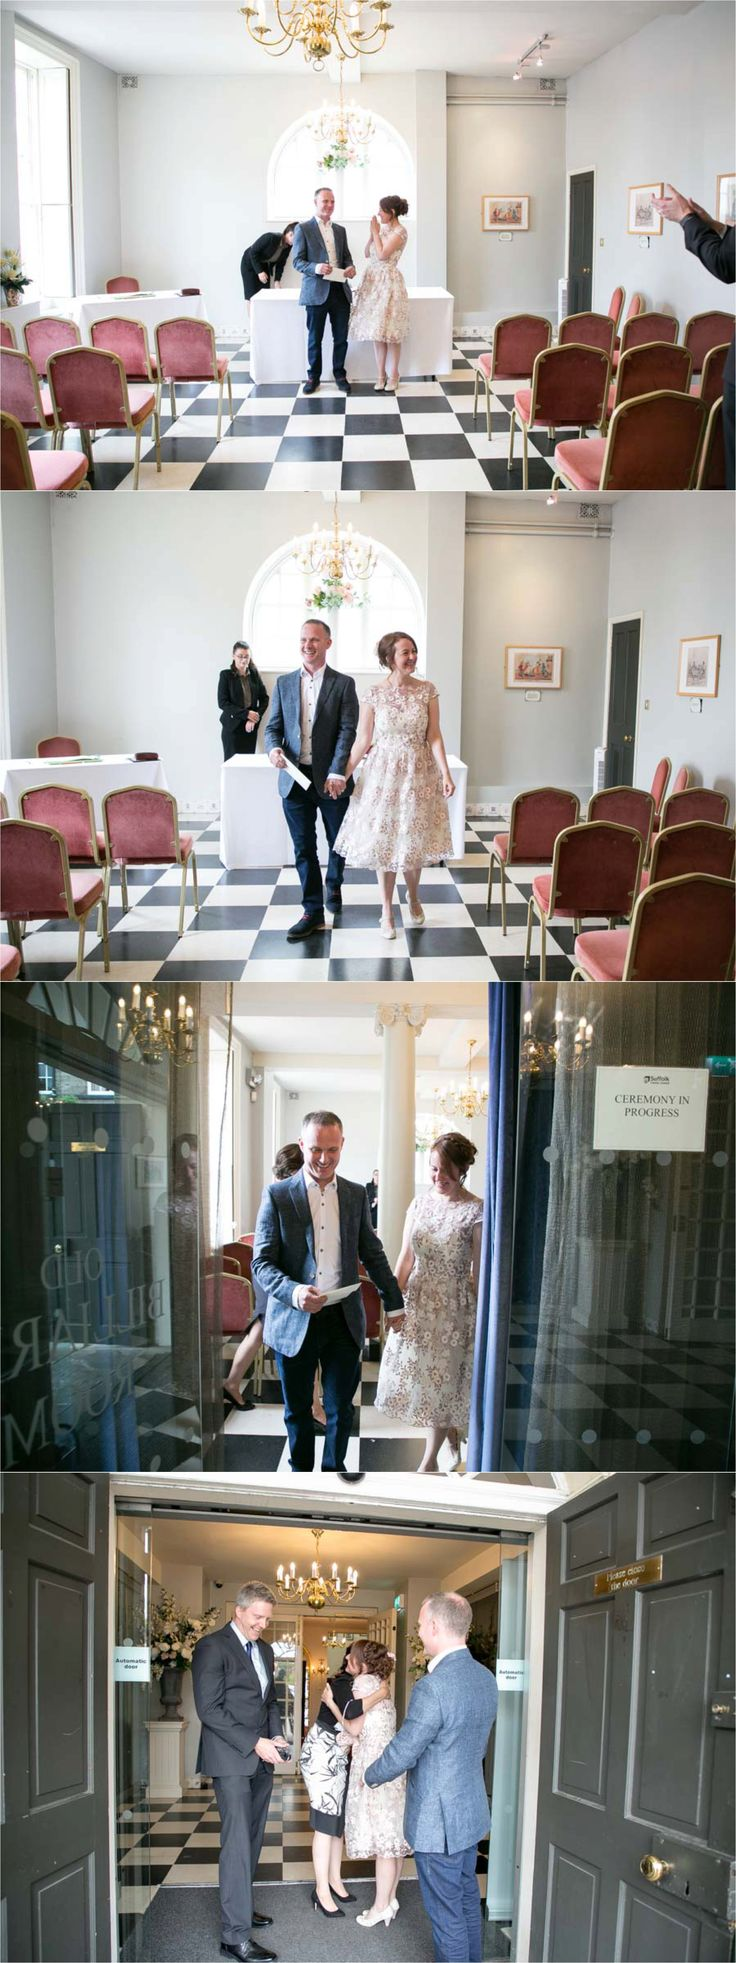 elopement wedding photography at the athenaeum in Bury St Edmunds